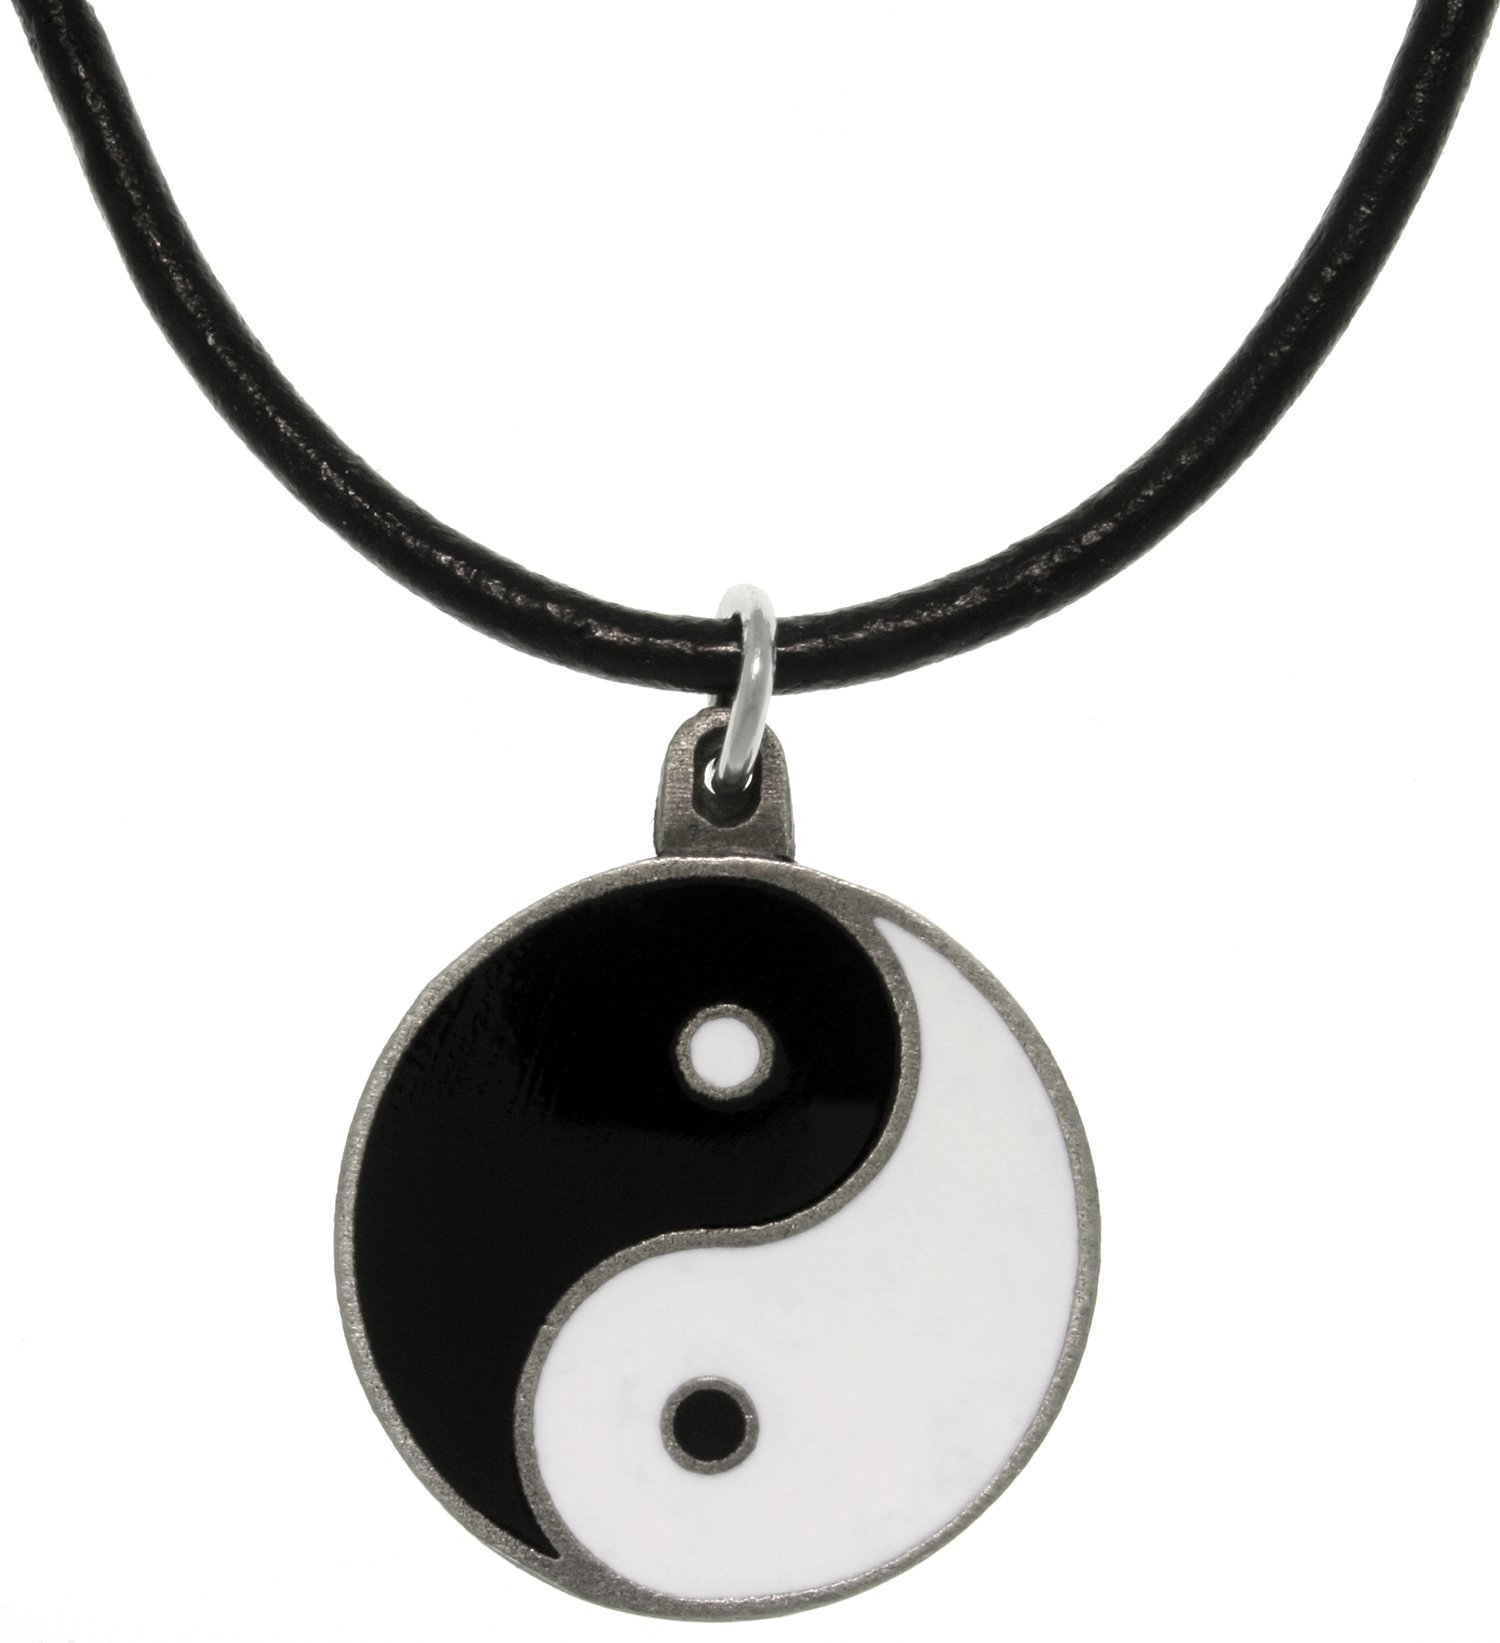 "Jewelry Trends Yin Yang Pewter Pendant Necklace 18"" Leather Cord"